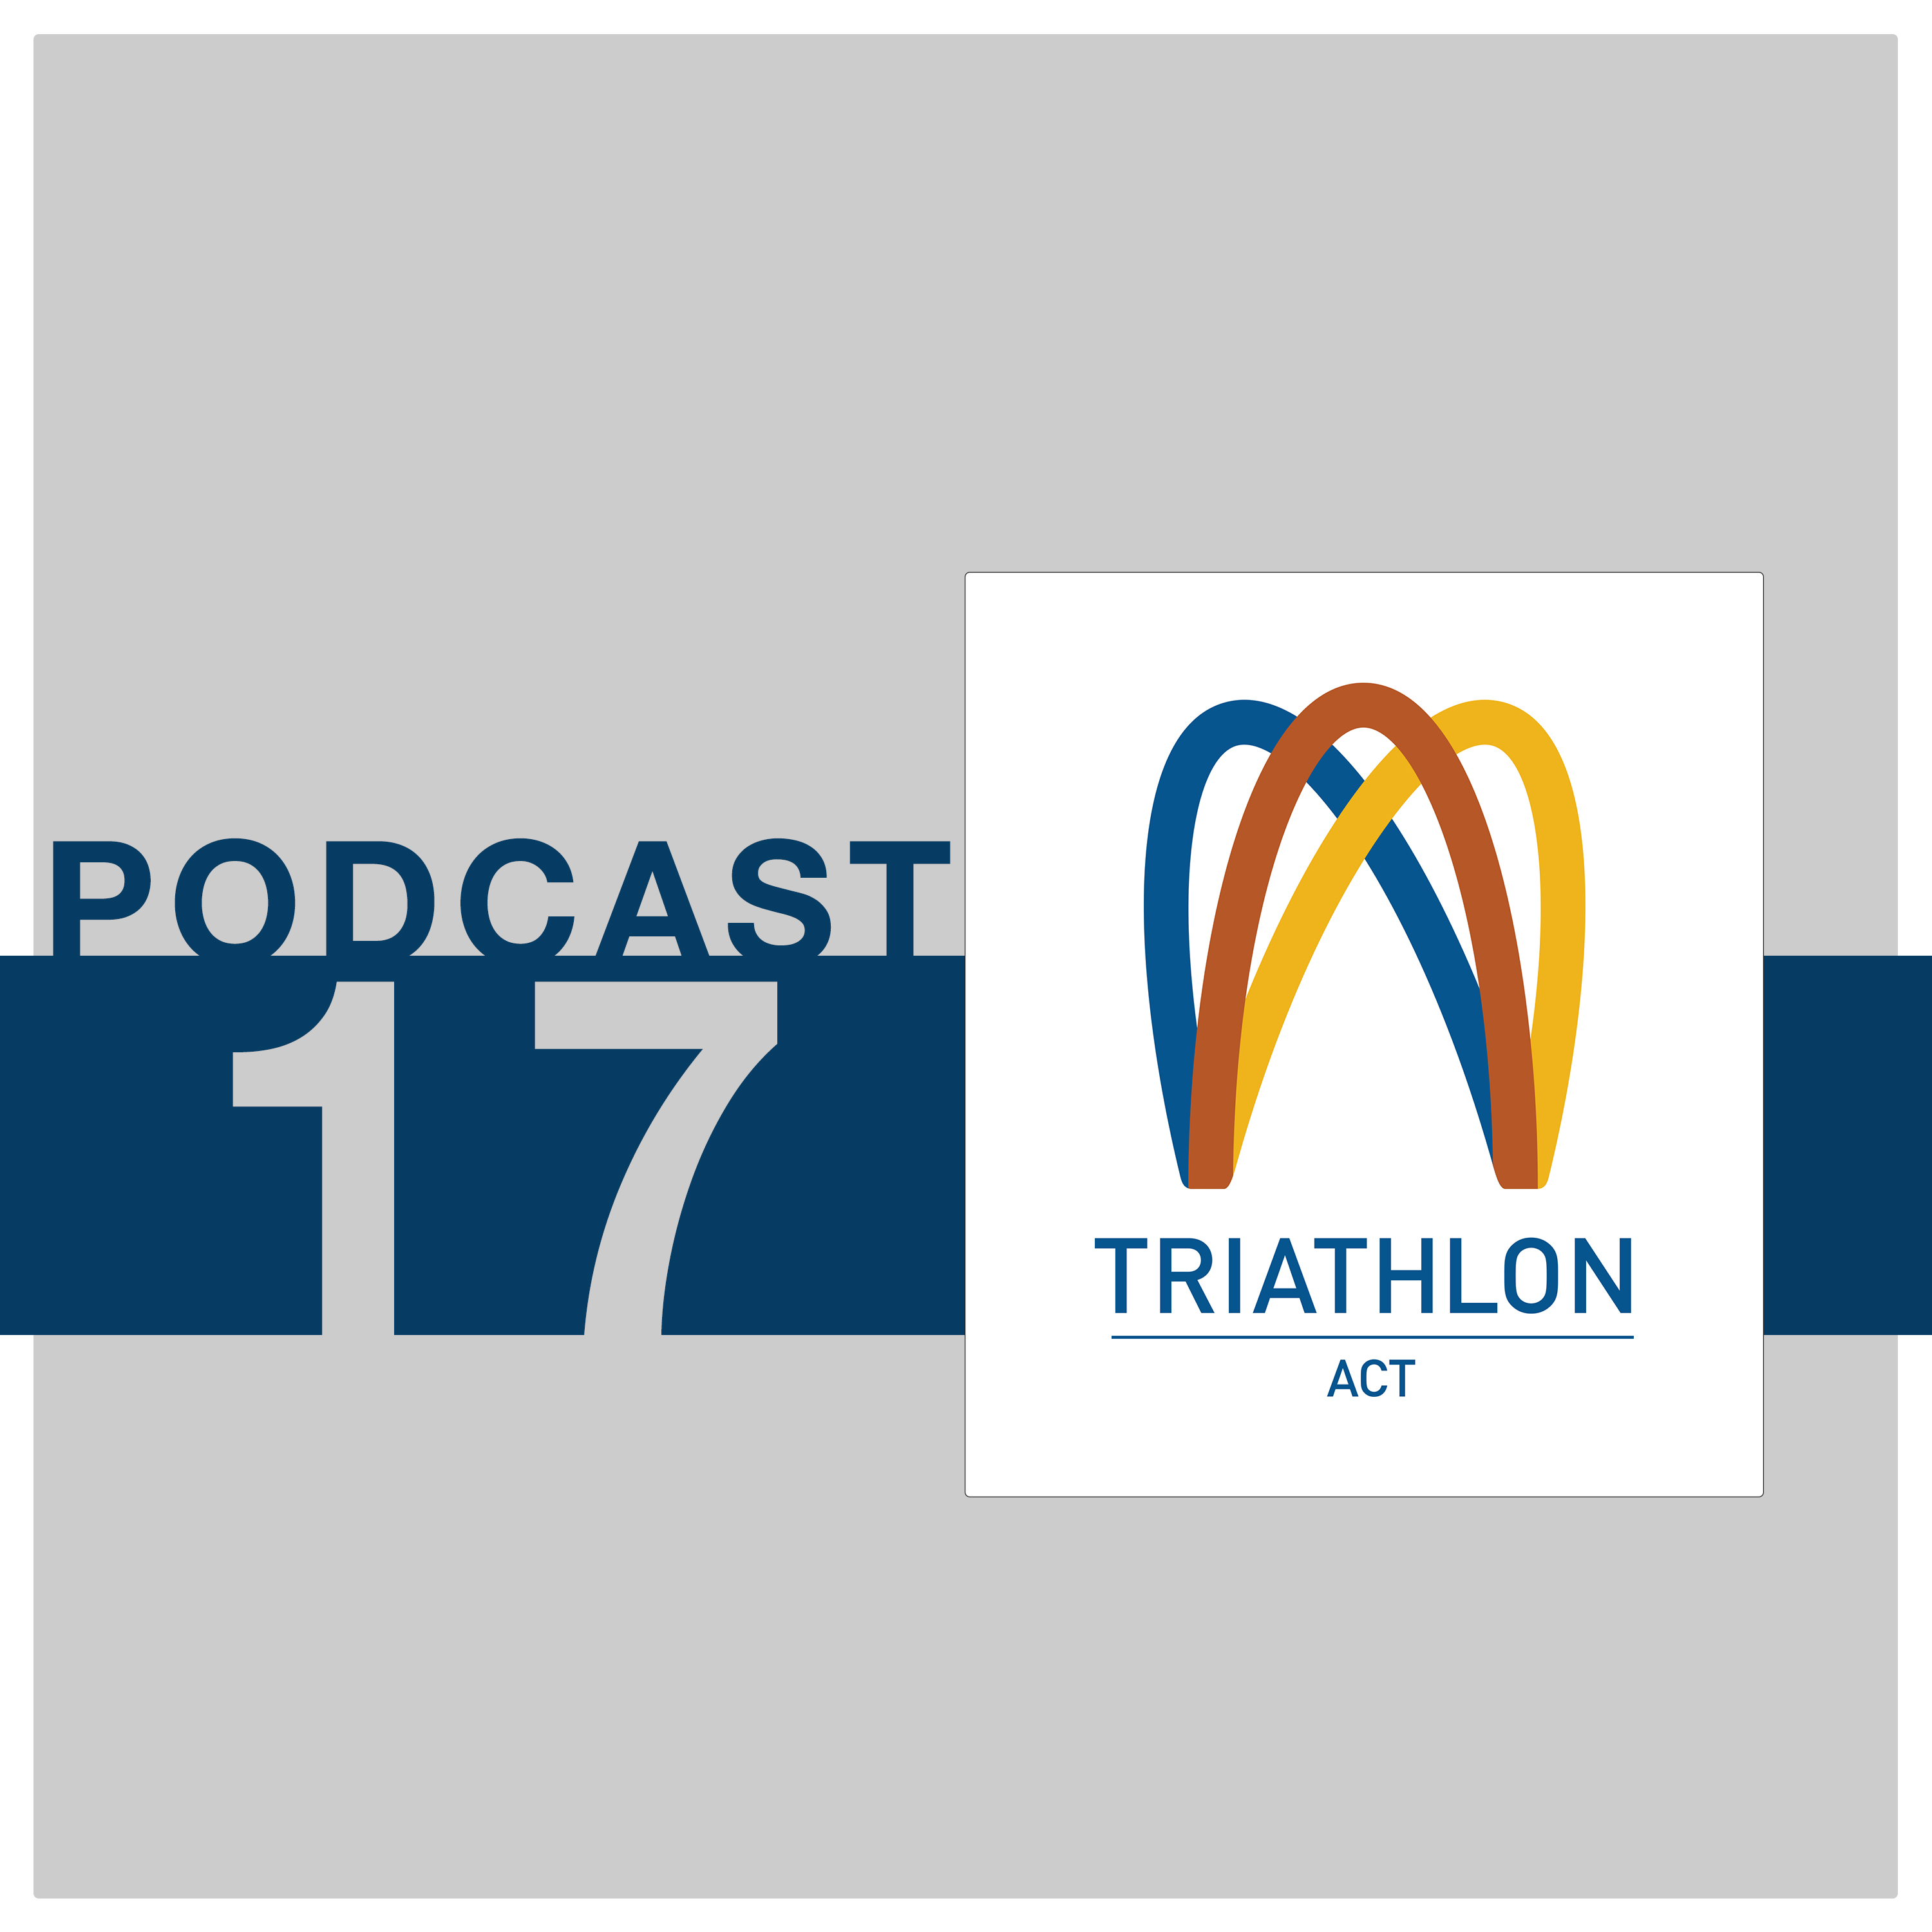 Triathlon ACT Podcast #17